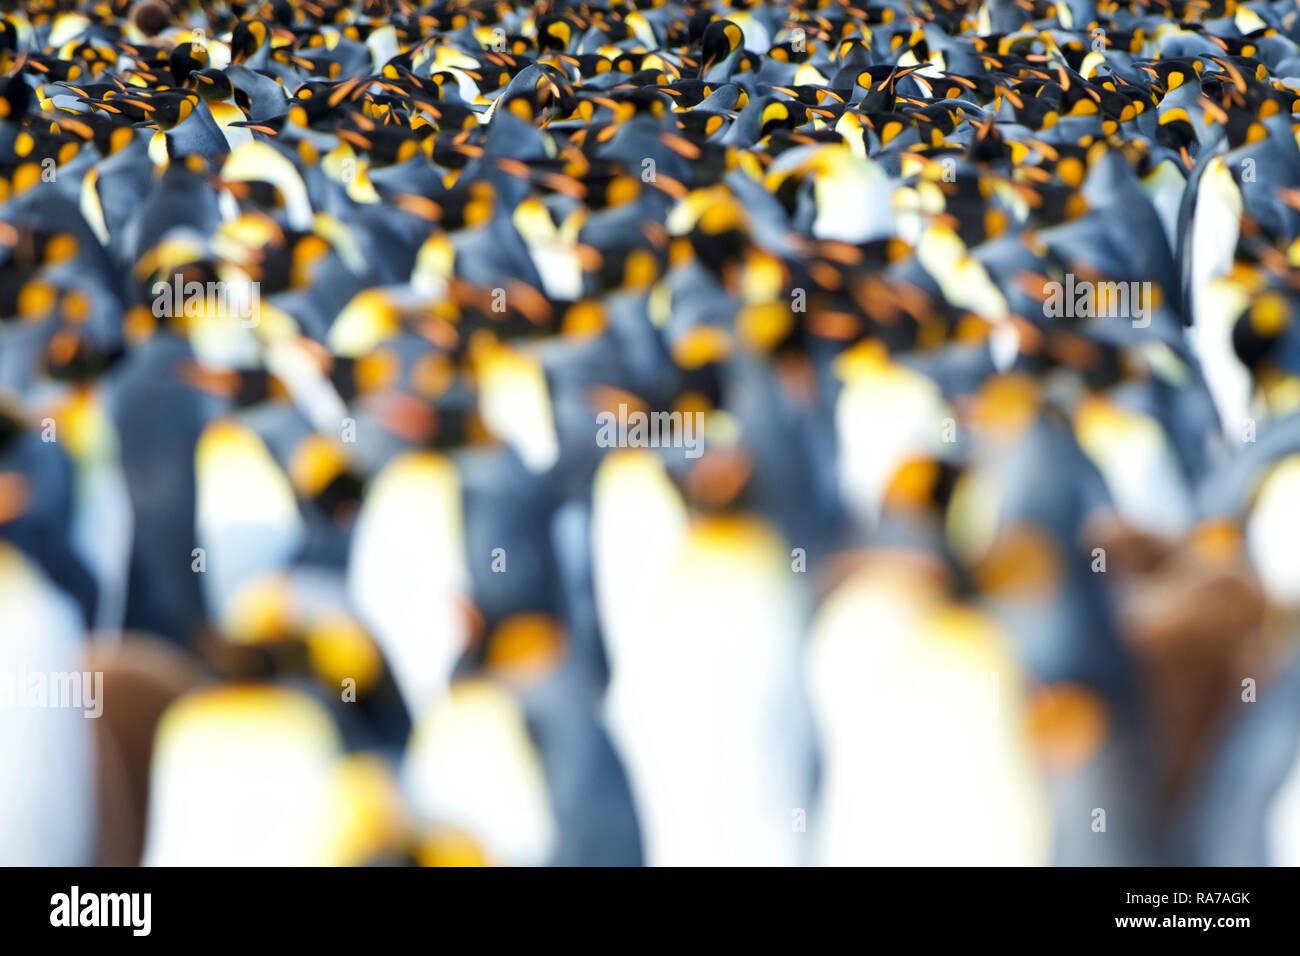 King Penguins in Gold Harbour, South Georgia - Stock Image